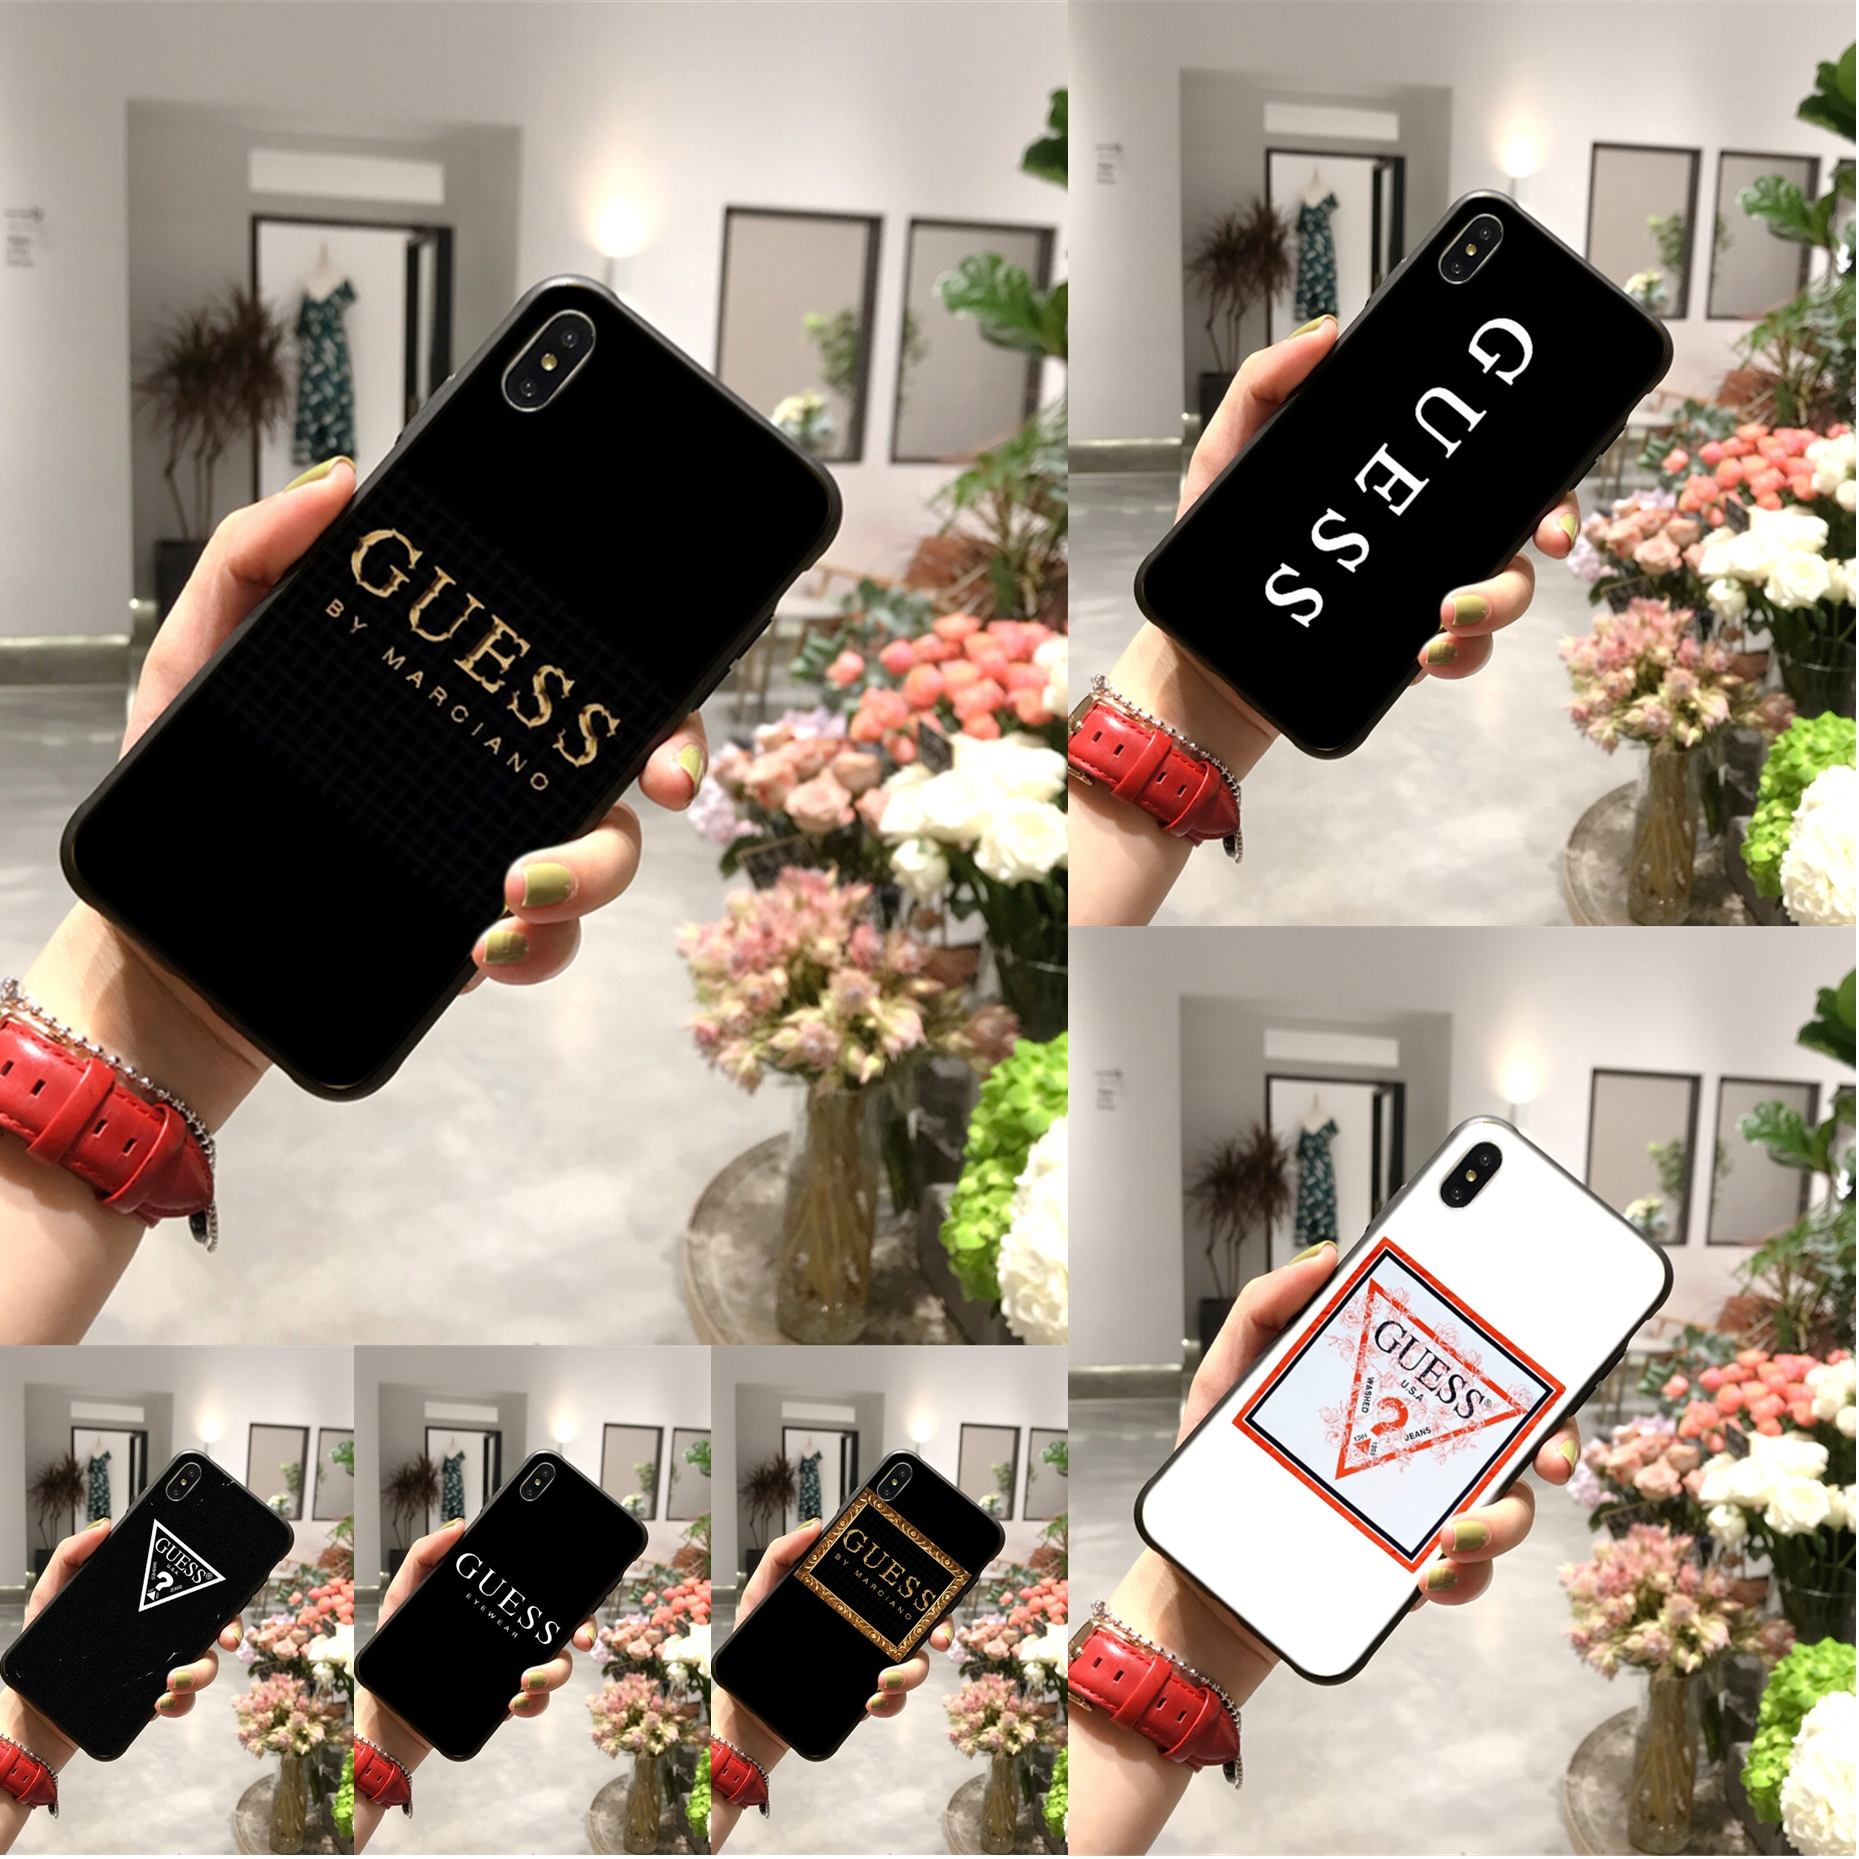 Luxury brand united state brand guess Inverted triangle phone case for iphone 11promax 6 6s 7 8plus cover for iphonexr x xs max